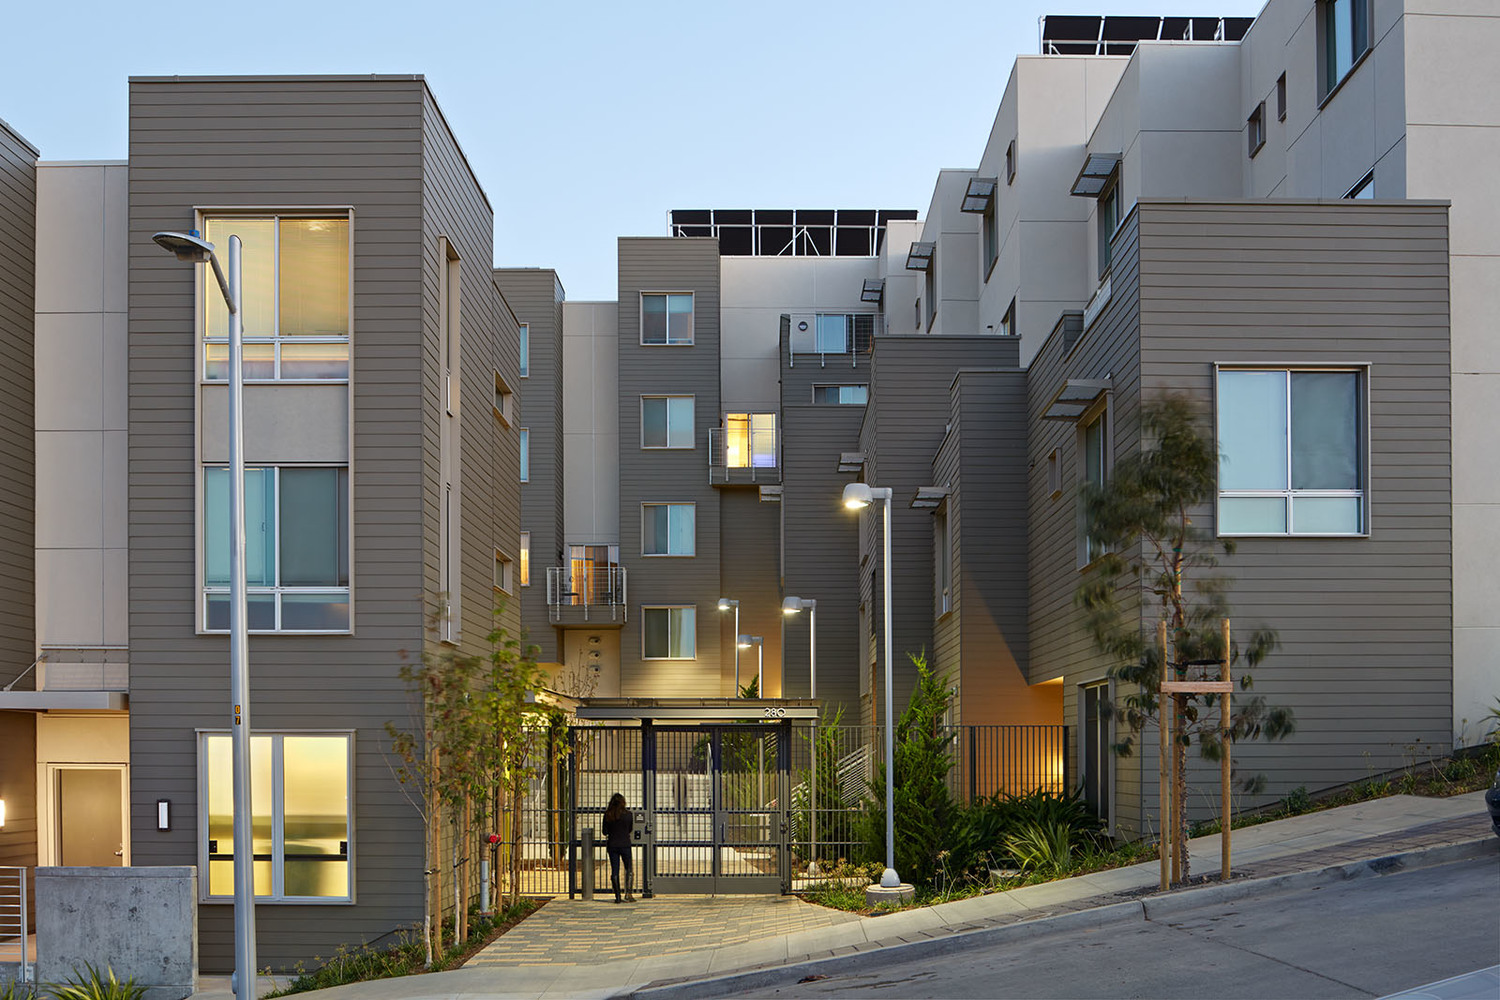 Image result for Hunters View housing projects in